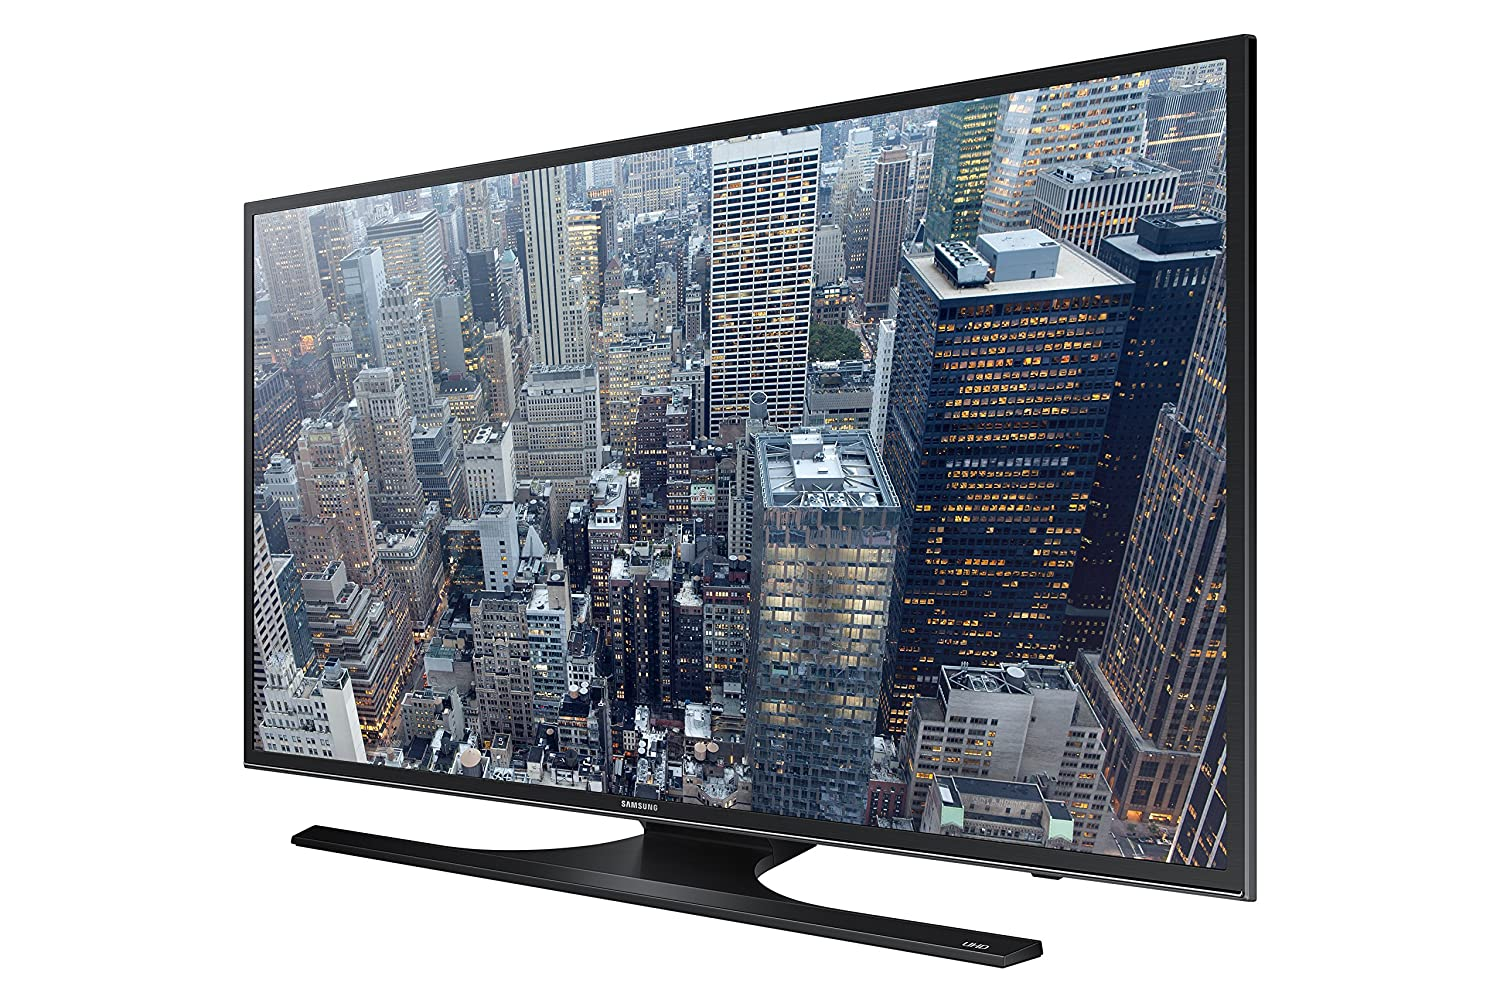 SAMSUNG UN40JU6500F LED TV WINDOWS 8 X64 DRIVER